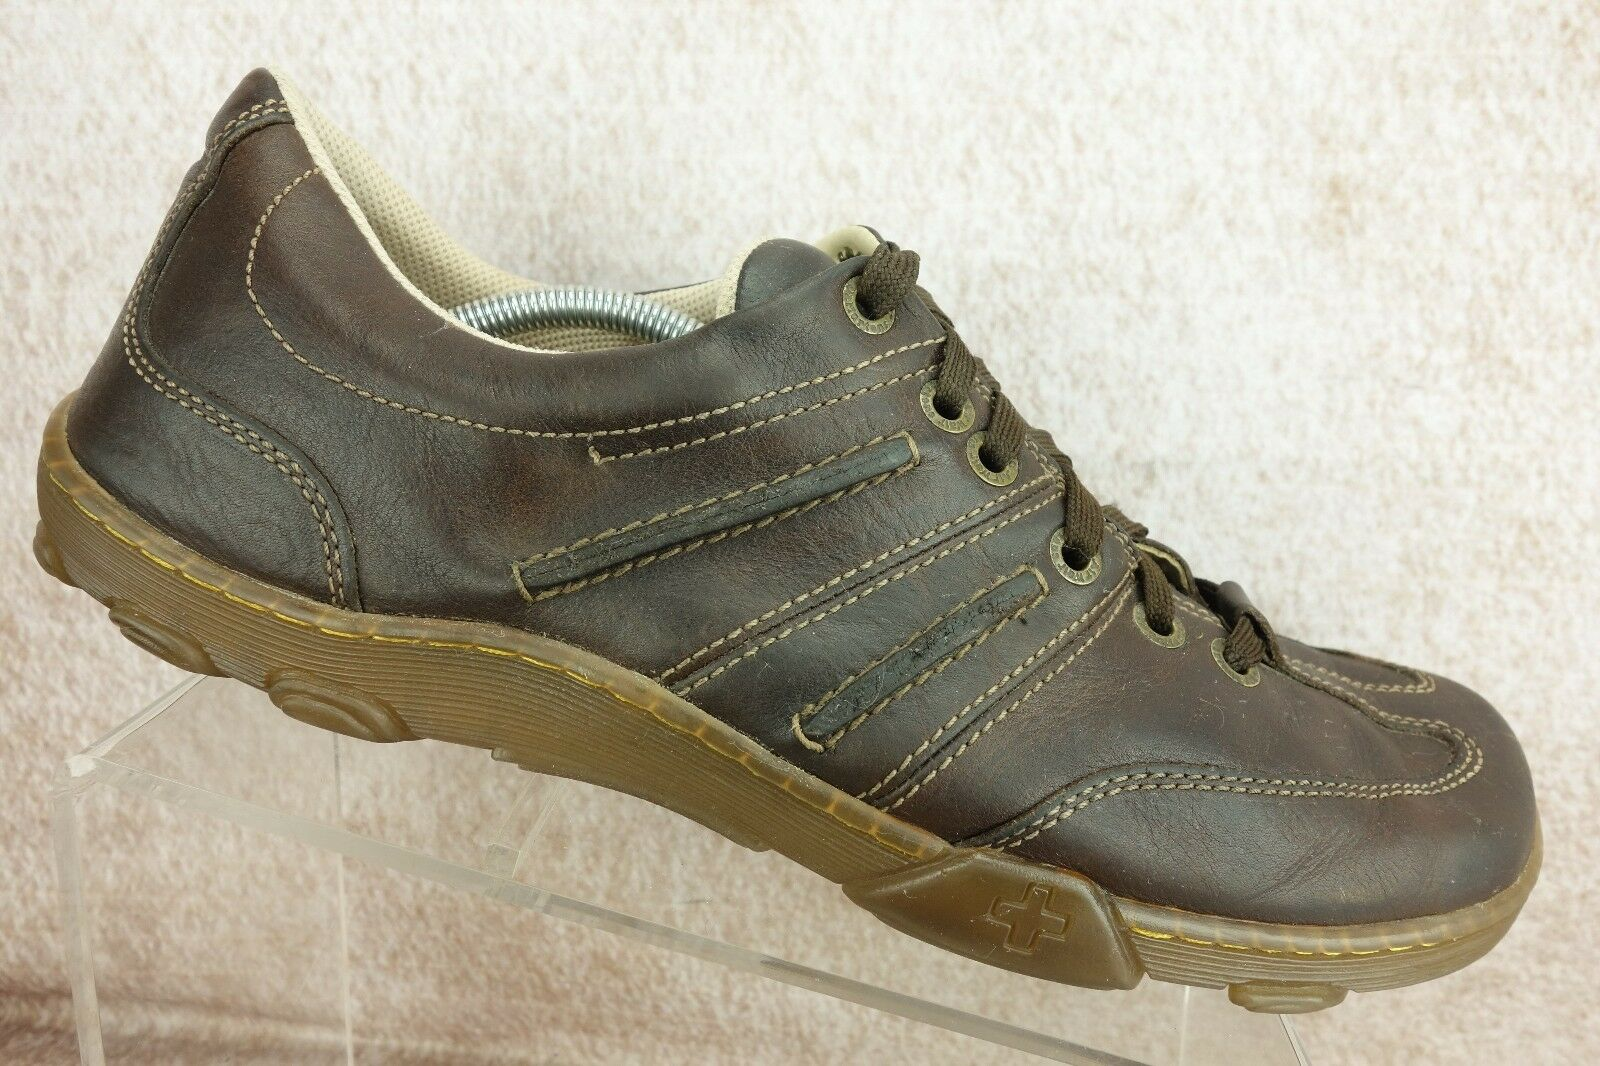 Doc Dr. Martens Brown Leather Casual Walking Oxford Shoes Shoes Shoes Men's Size 13 M 83cd68